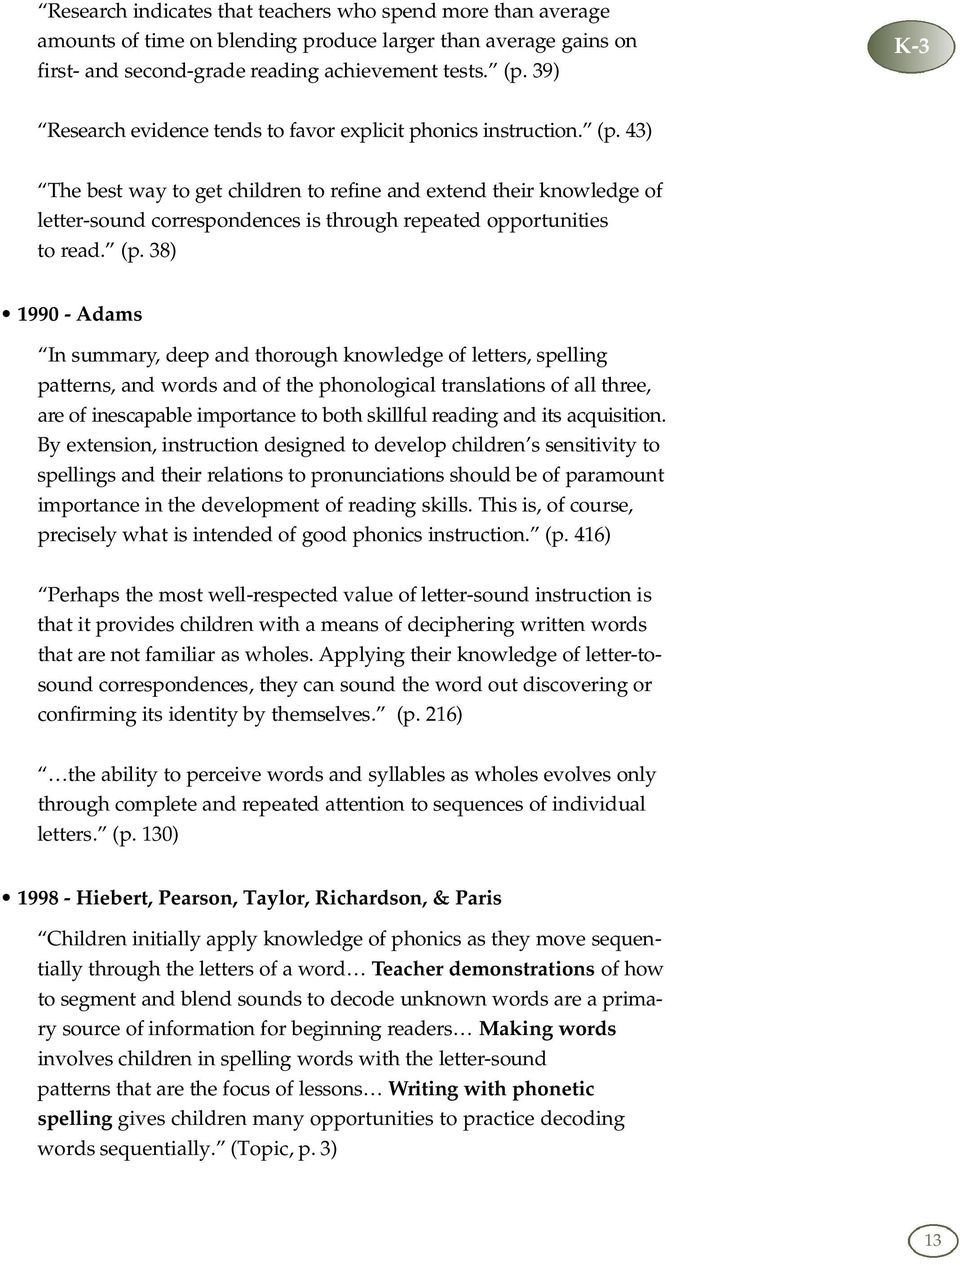 The Role Of Phonics In Beginning Reading Instruction Has Been The